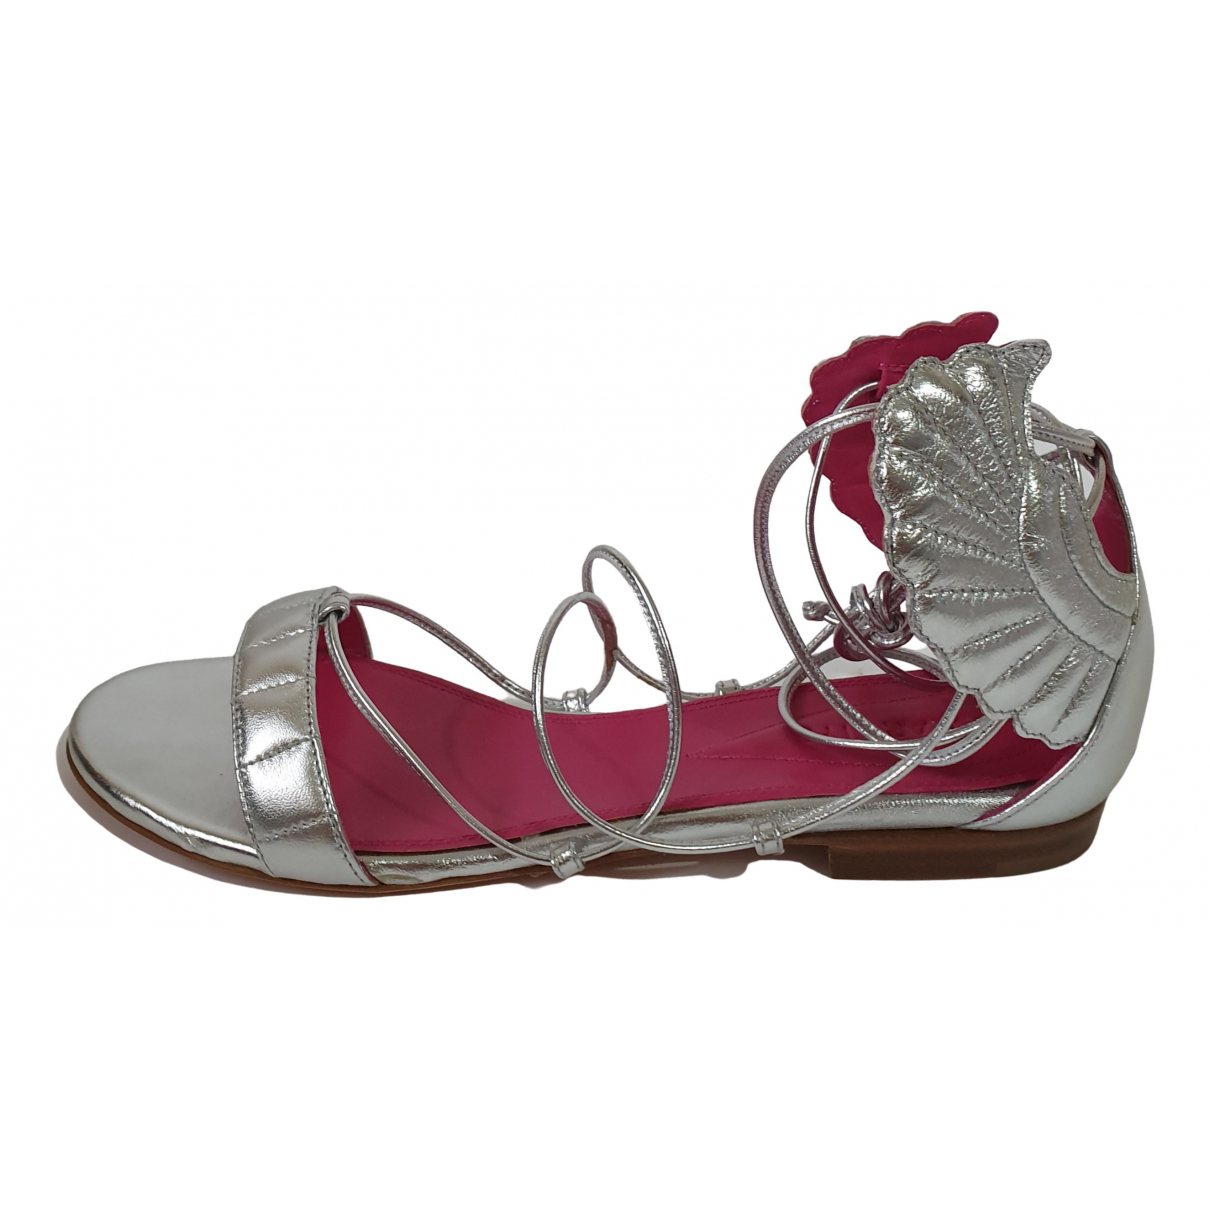 Oscar Tiye \N Silver Leather Sandals for Women 37.5 EU